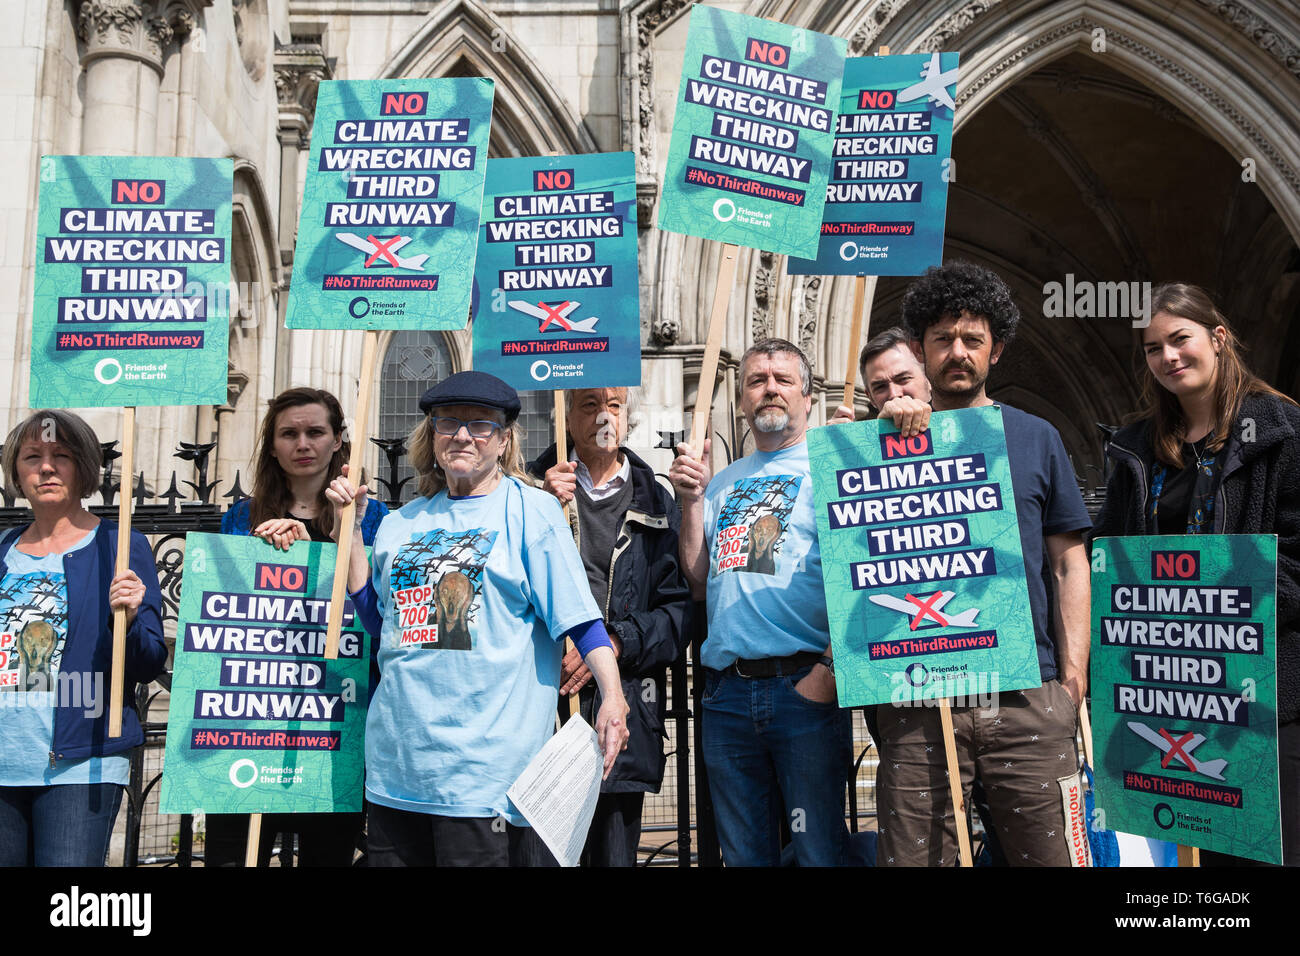 London, UK. 1st May, 2019. Campaigners gather outside the Royal Courts of Justice after the failure of a High Court challenge to the controversial plans to build a third runway at Heathrow airport. Judicial reviews of the Government's decision to approve the plans had been brought by five councils, residents, environmental charities including Greenpeace, Friends of the Earth and Plan B and London Mayor Sadiq Khan. Credit: Mark Kerrison/Alamy Live News - Stock Image